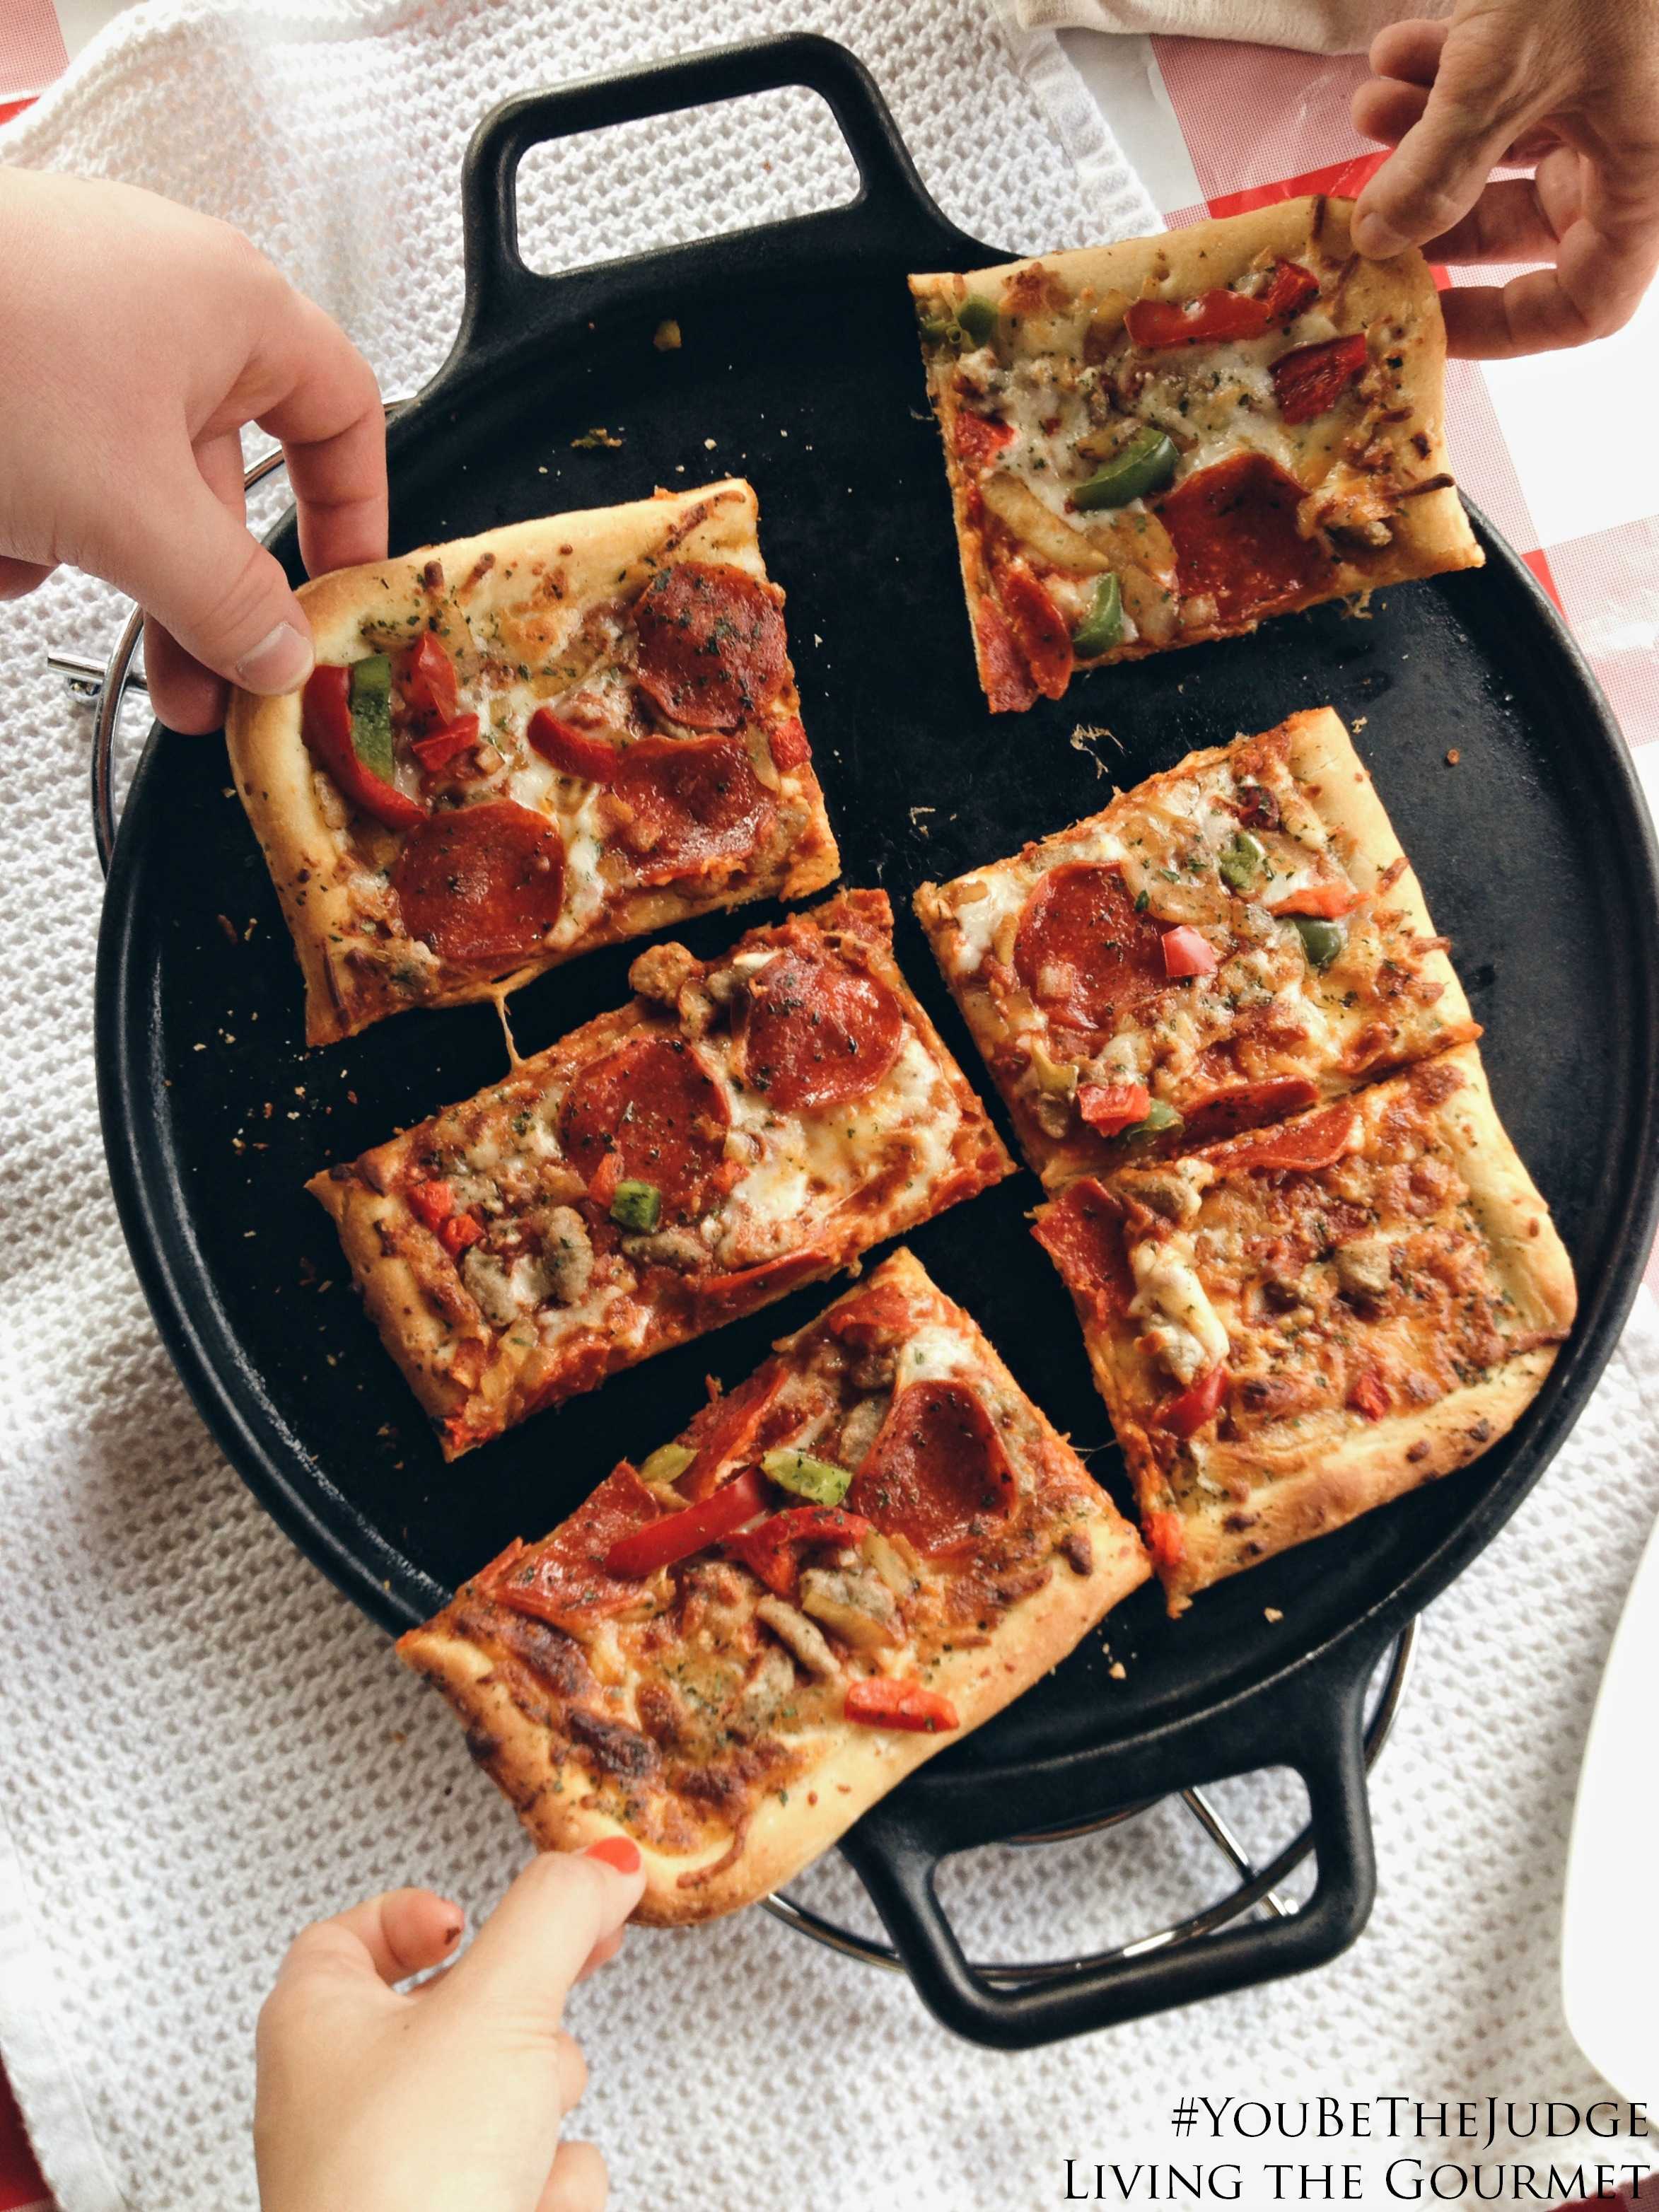 Living the Gourmet: A Relaxing Evening with DiGiorno #YouBeTheJudge #Ad